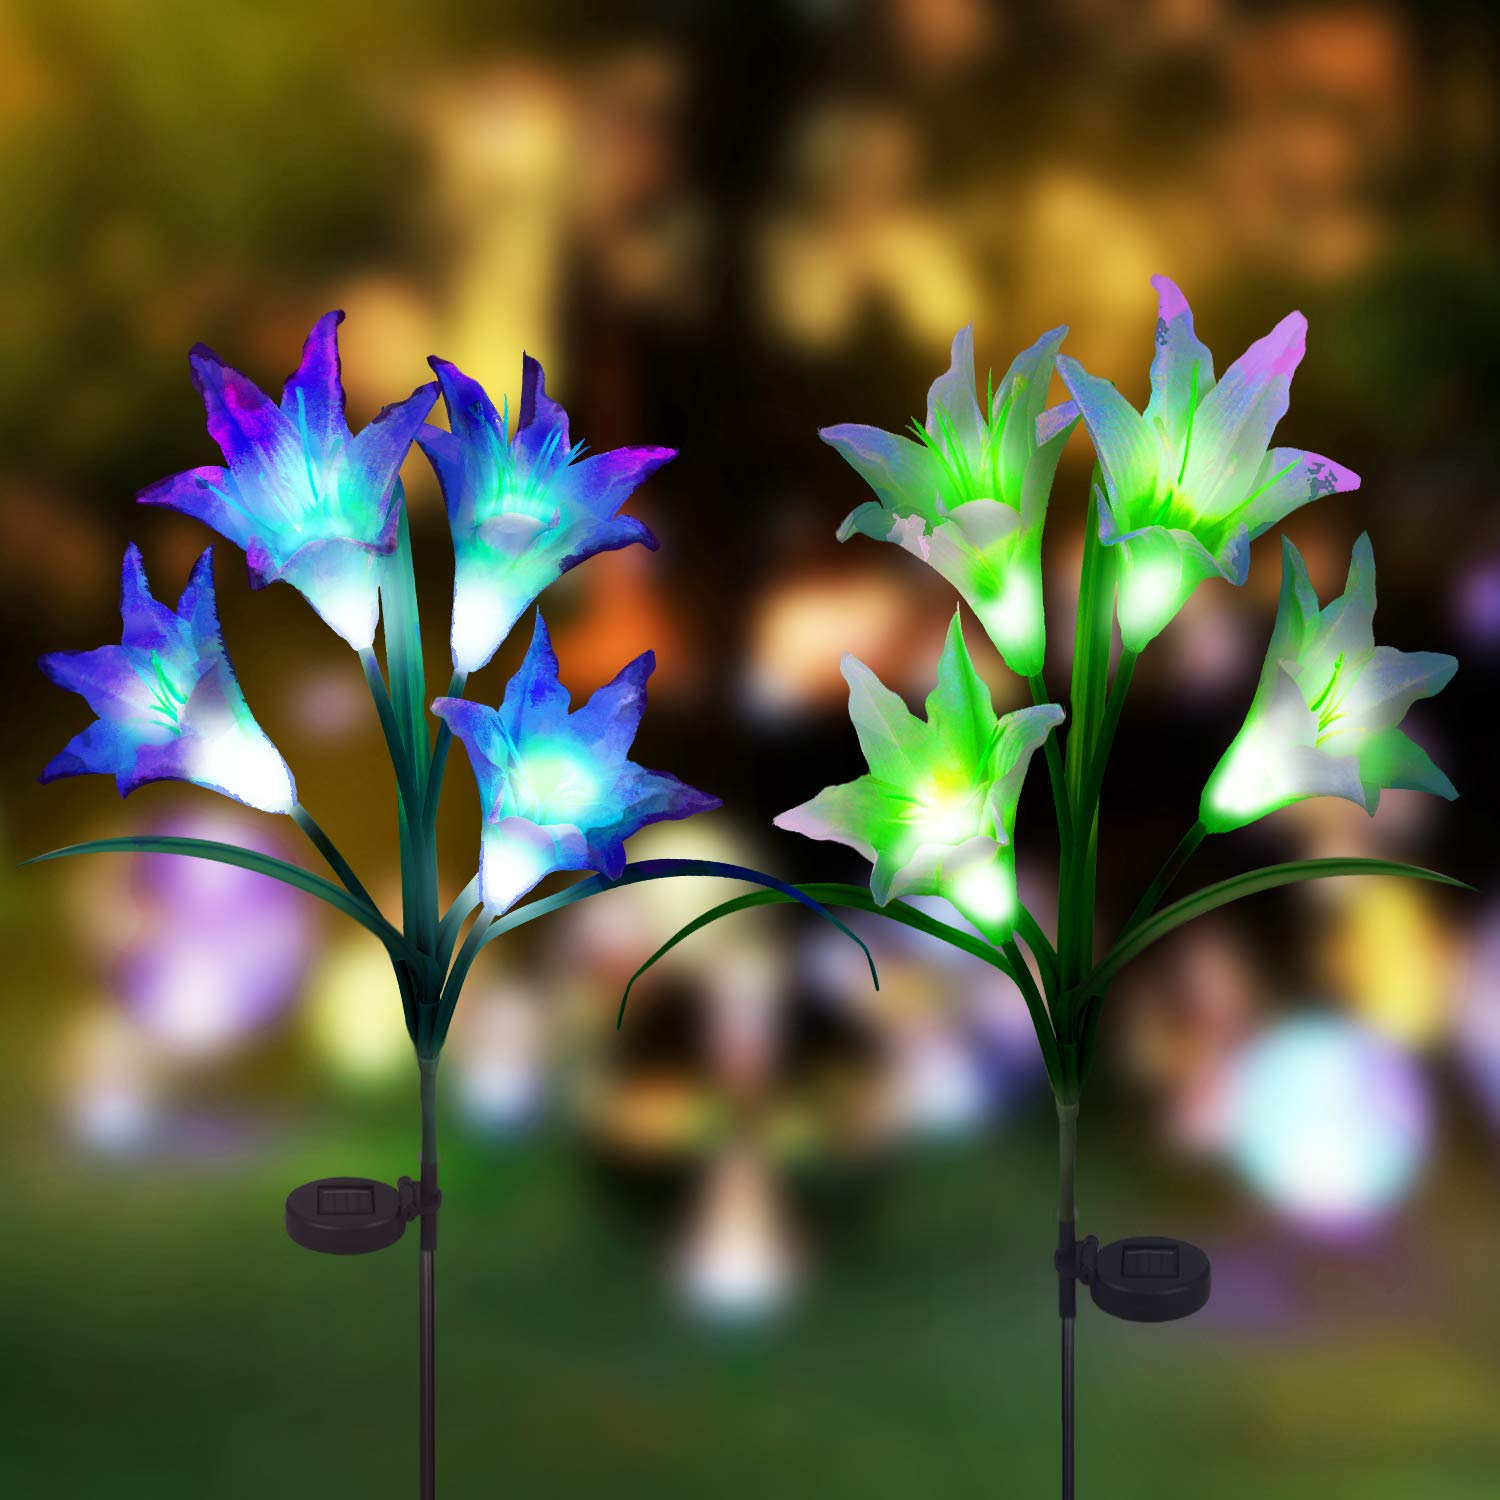 Digiroot Waterproof Outdoor Solar Garden Stake lights,2 Packs Solar Powered Decorative Light with 8 Lily Flower light,Multi-Color Changing LED Solar Path Lights for Garden,Patio,Backyad (Purple/White)